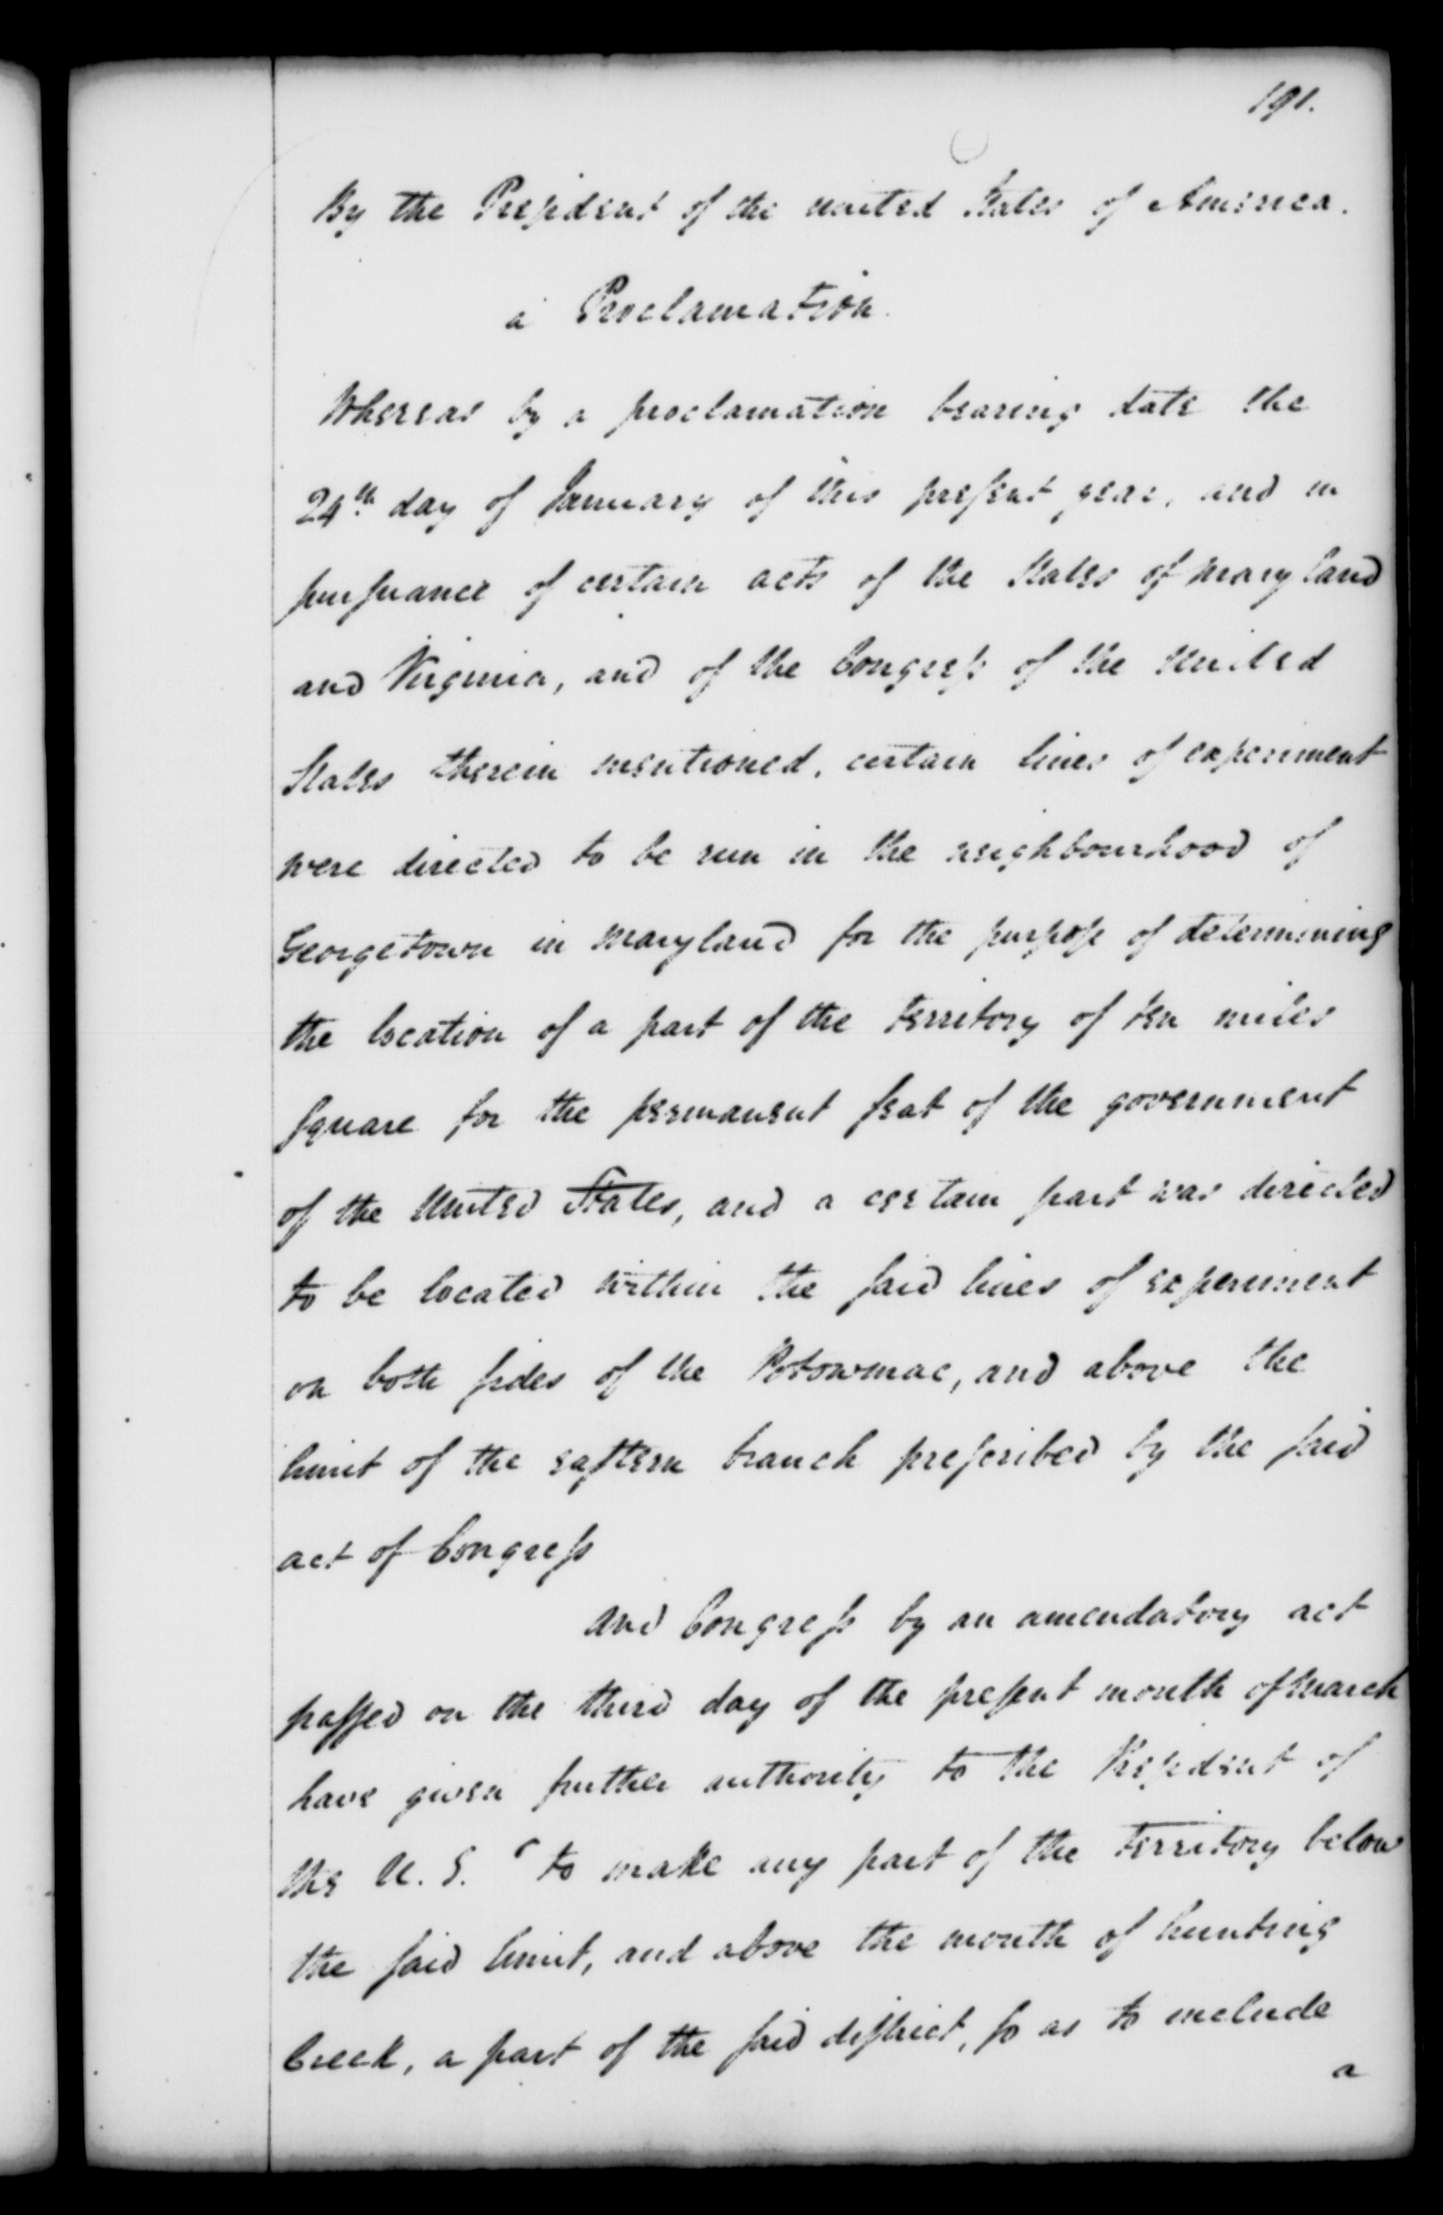 Proclamation written by President George Washington on March 30, 1791, specifying the boundaries of the proposed Federal capital, Washington D.C.